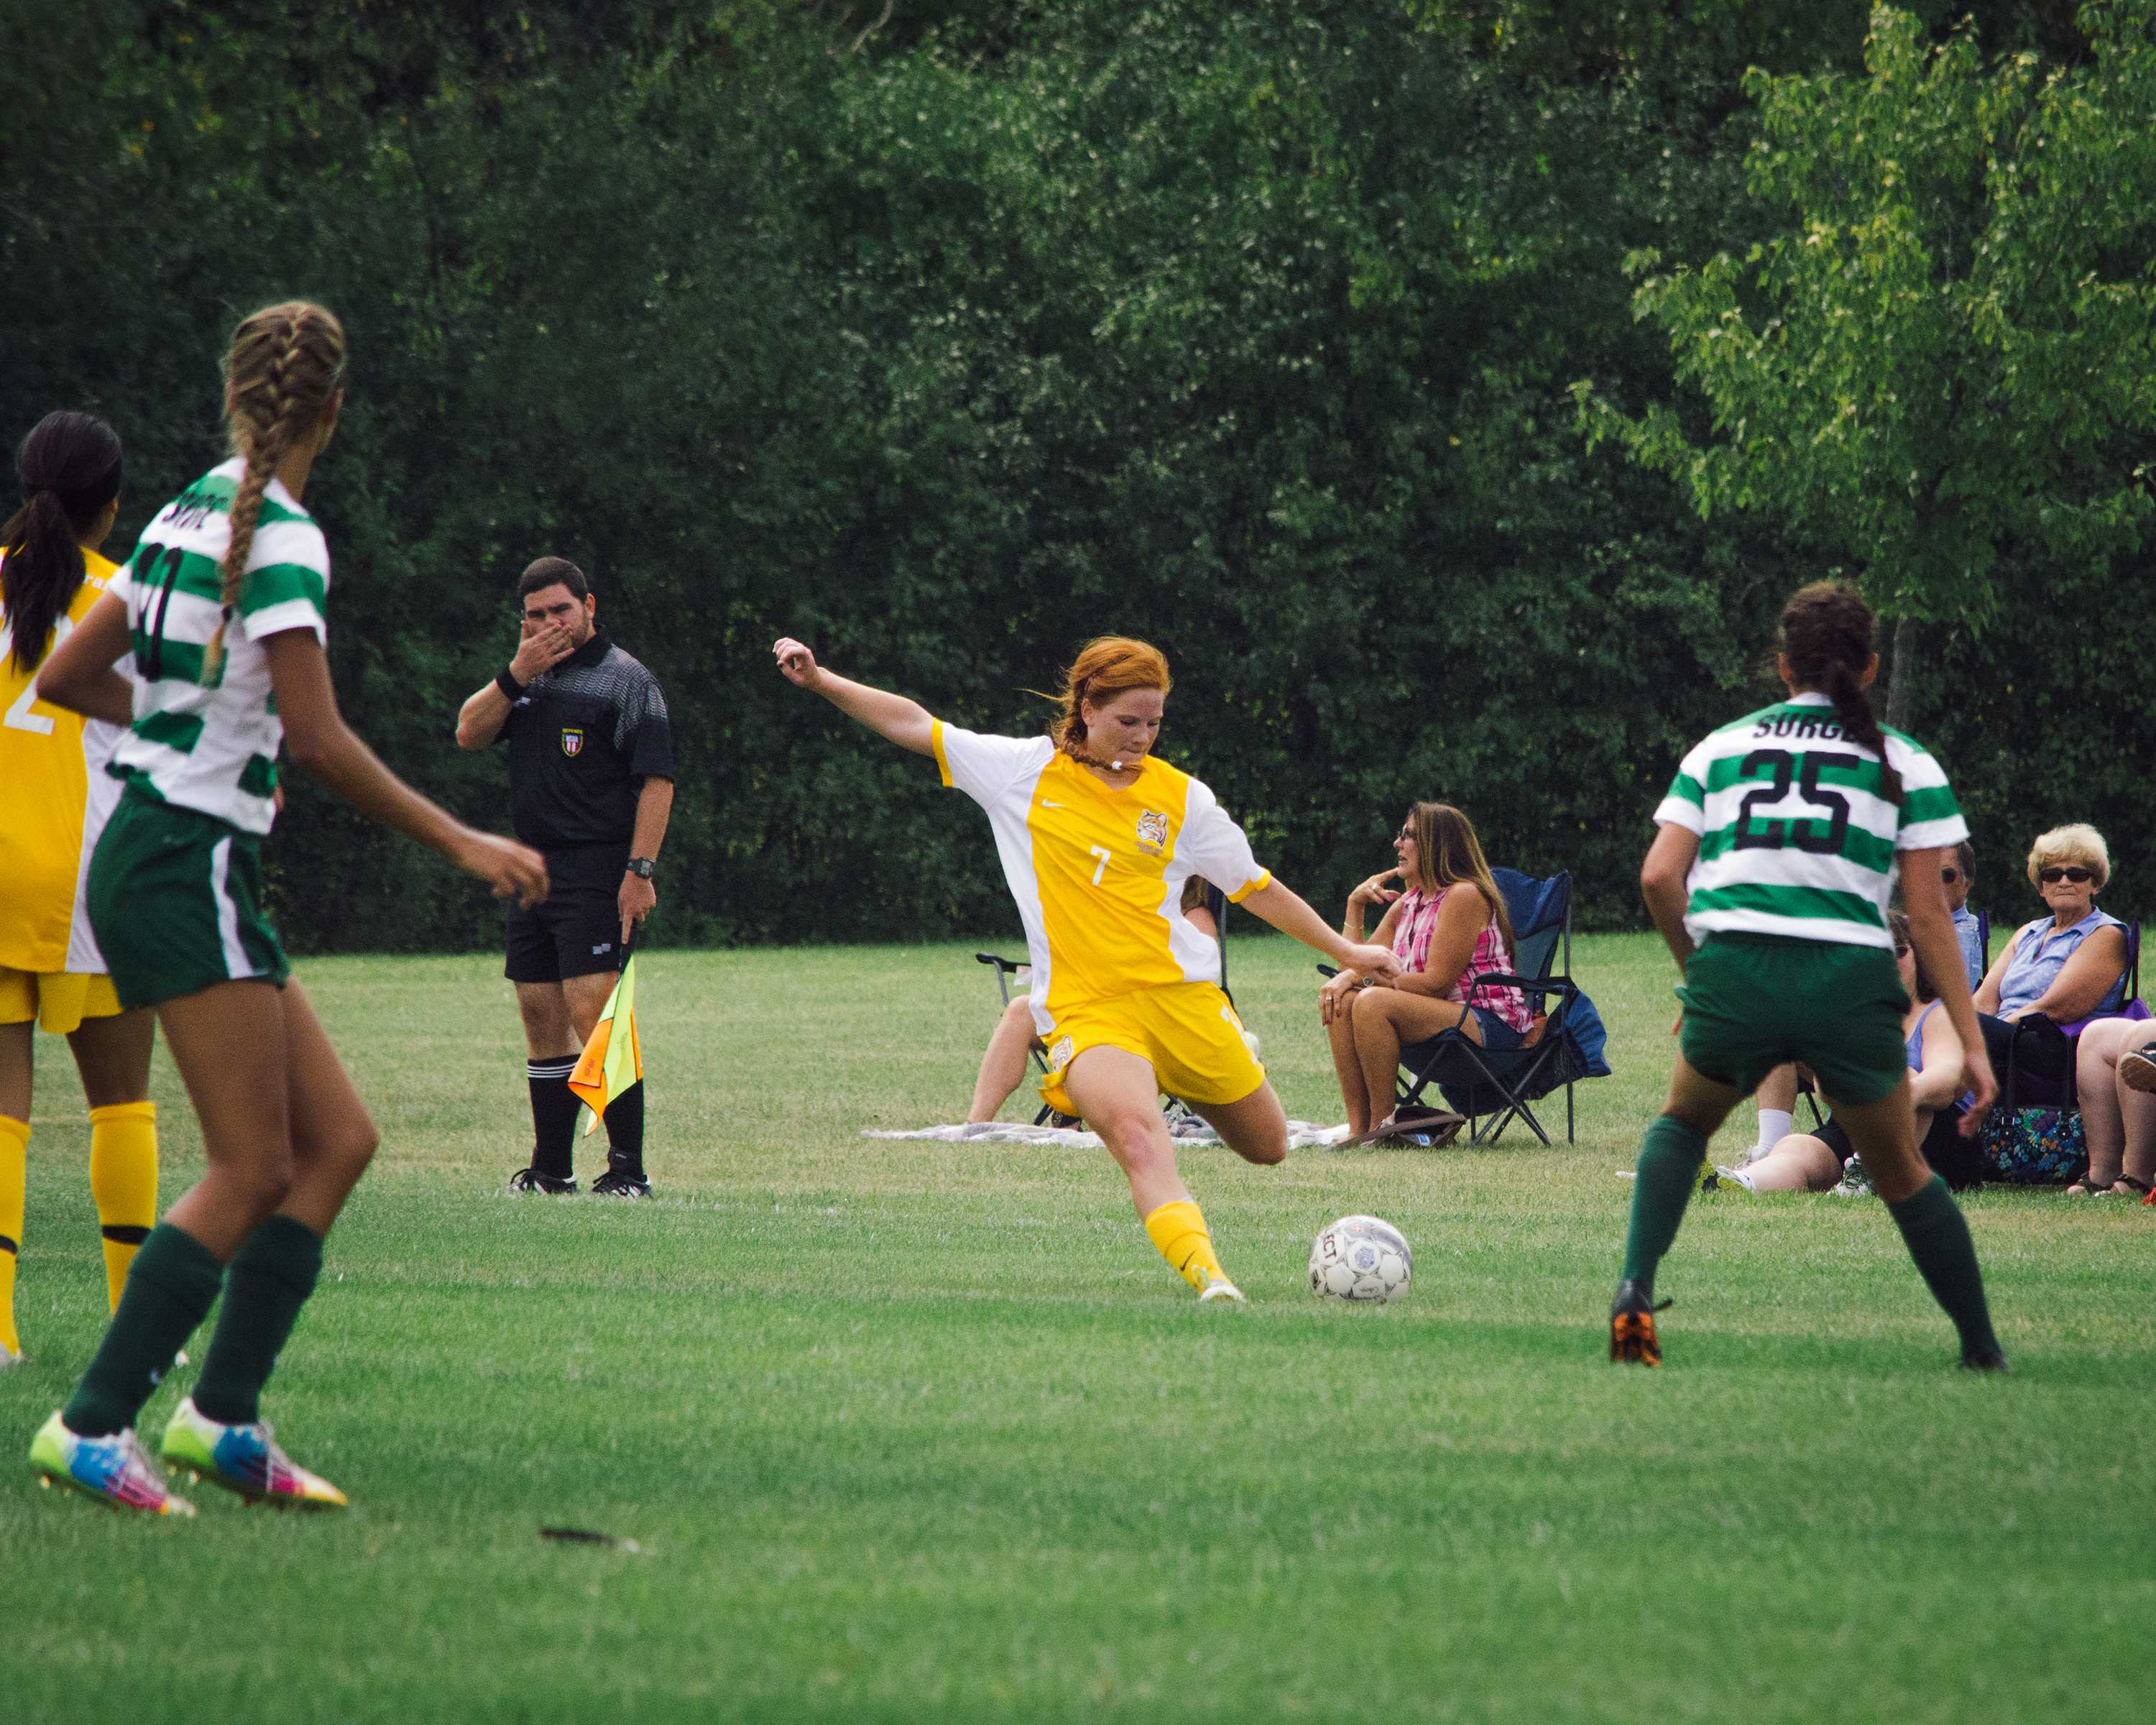 Lady Ocelot Defender, Lacey Chanady chips the ball over the opposing teams defensive players to give her fellow teammates an opportunity to score on Sunday